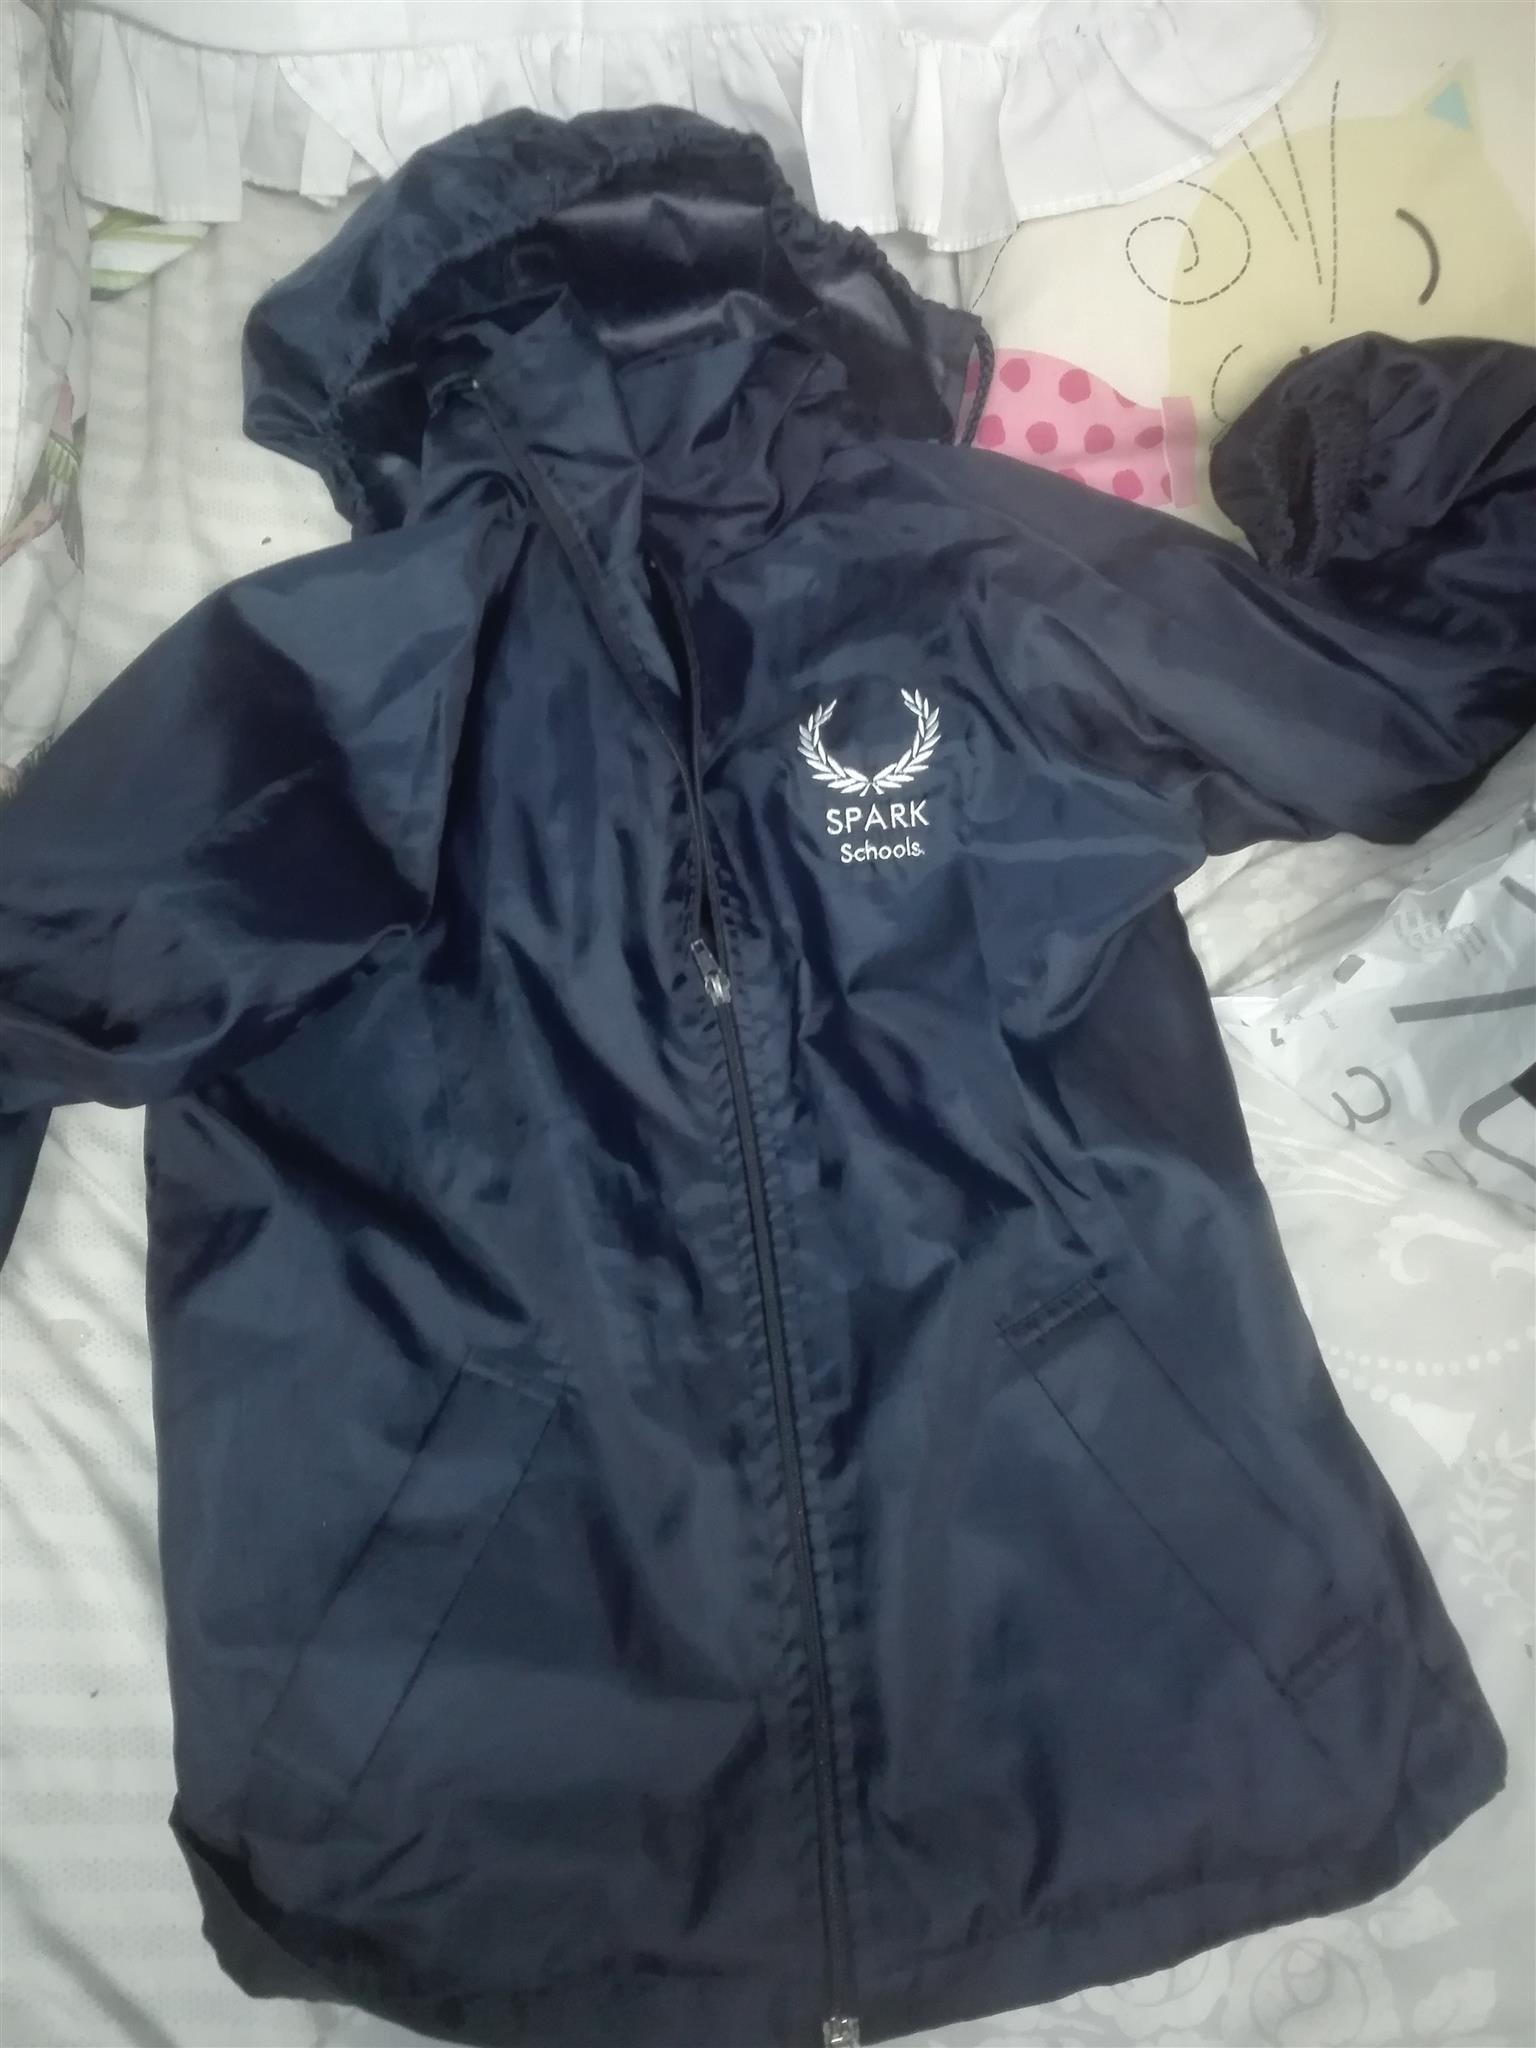 Spark School uniforms almost brand new